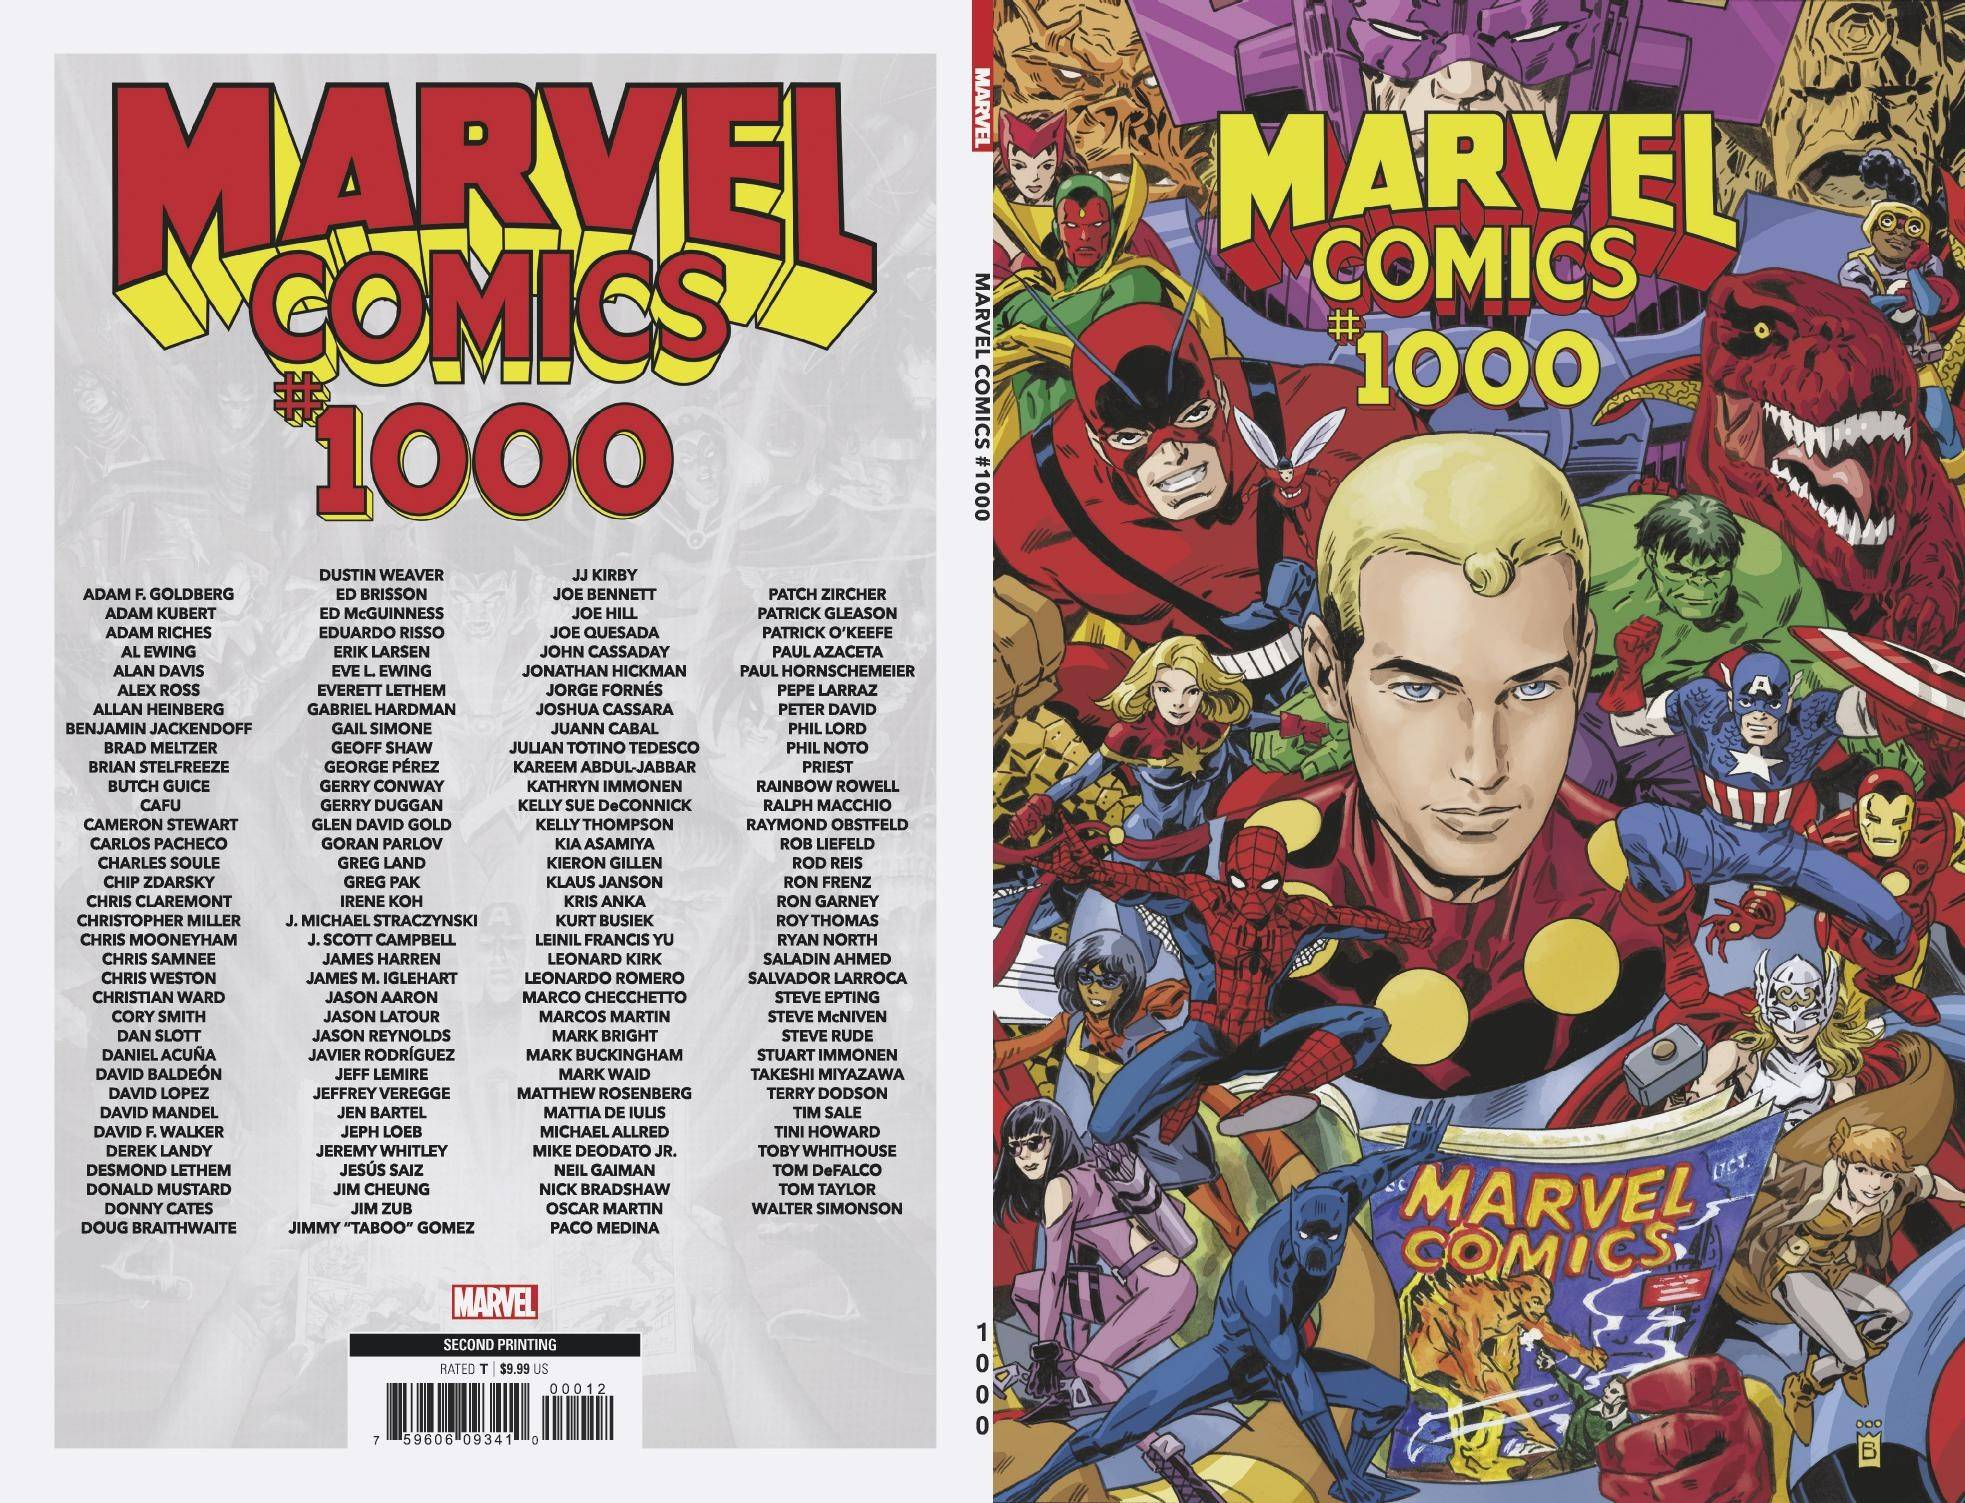 MARVEL COMICS #1000 2ND PTG BUCKINGHAM VAR.jpg